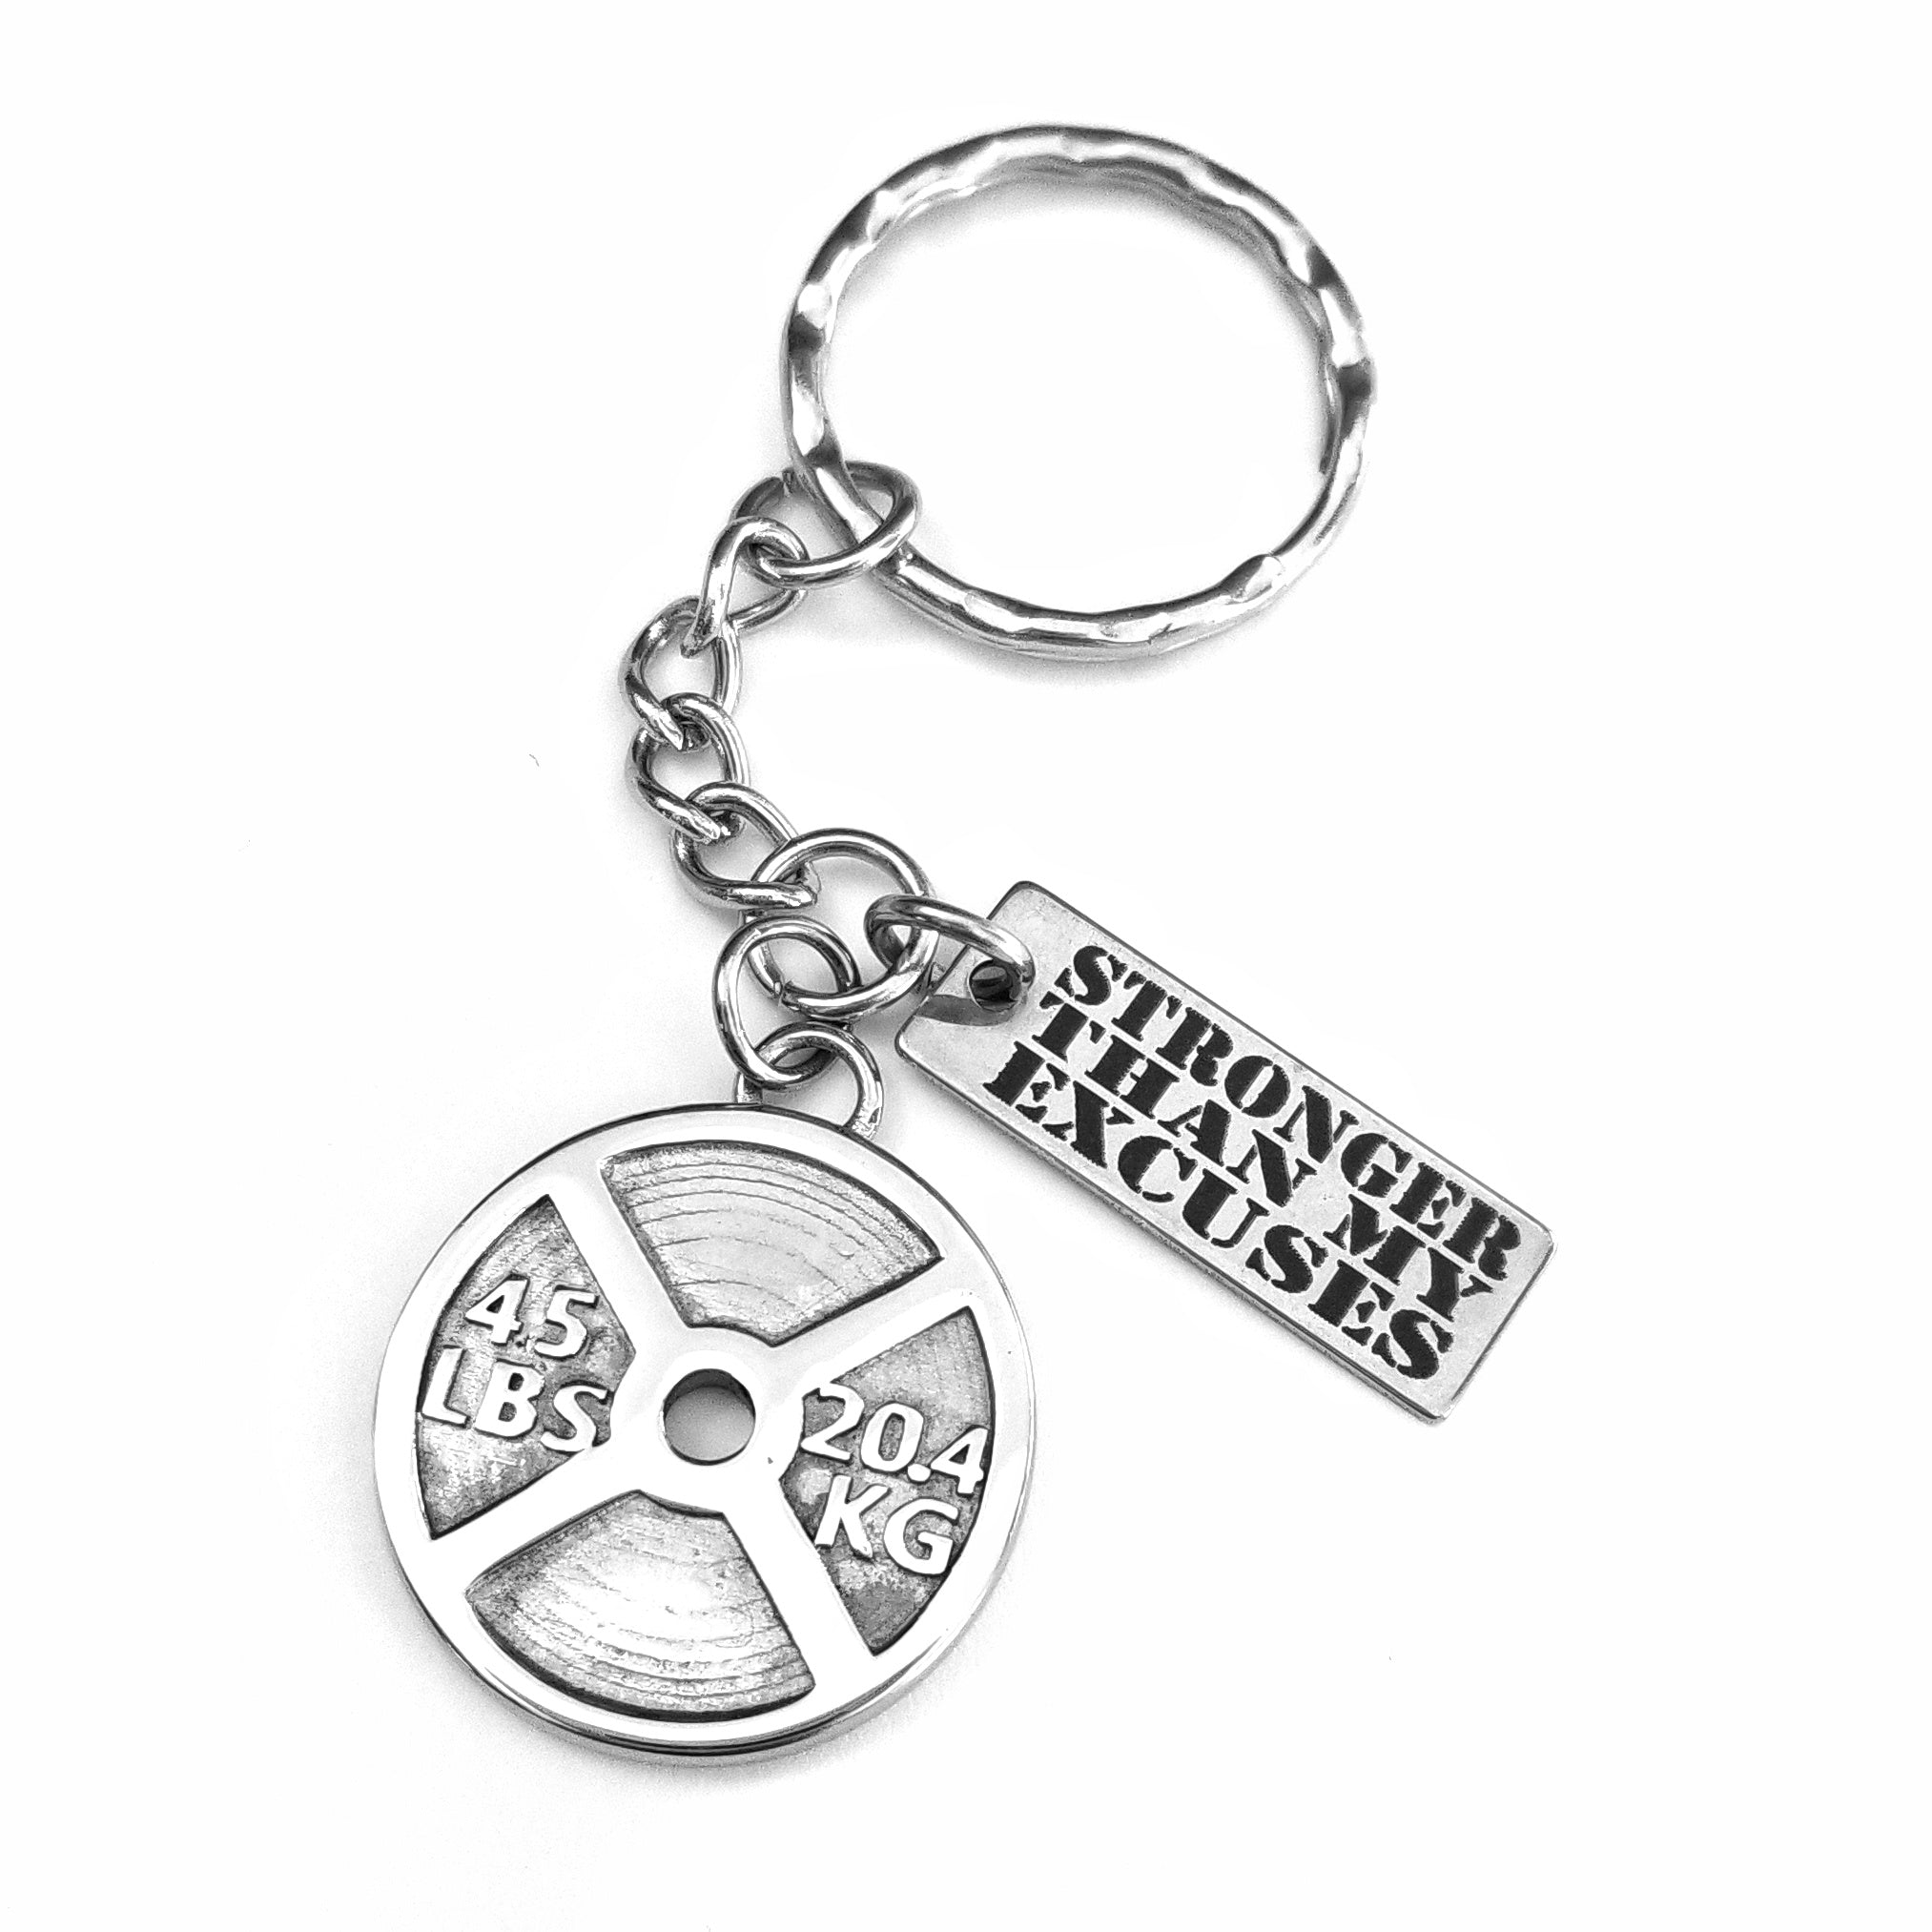 Stronger Than My Excuses 45lb Weight Plate Key Chain (Stainless Steel)